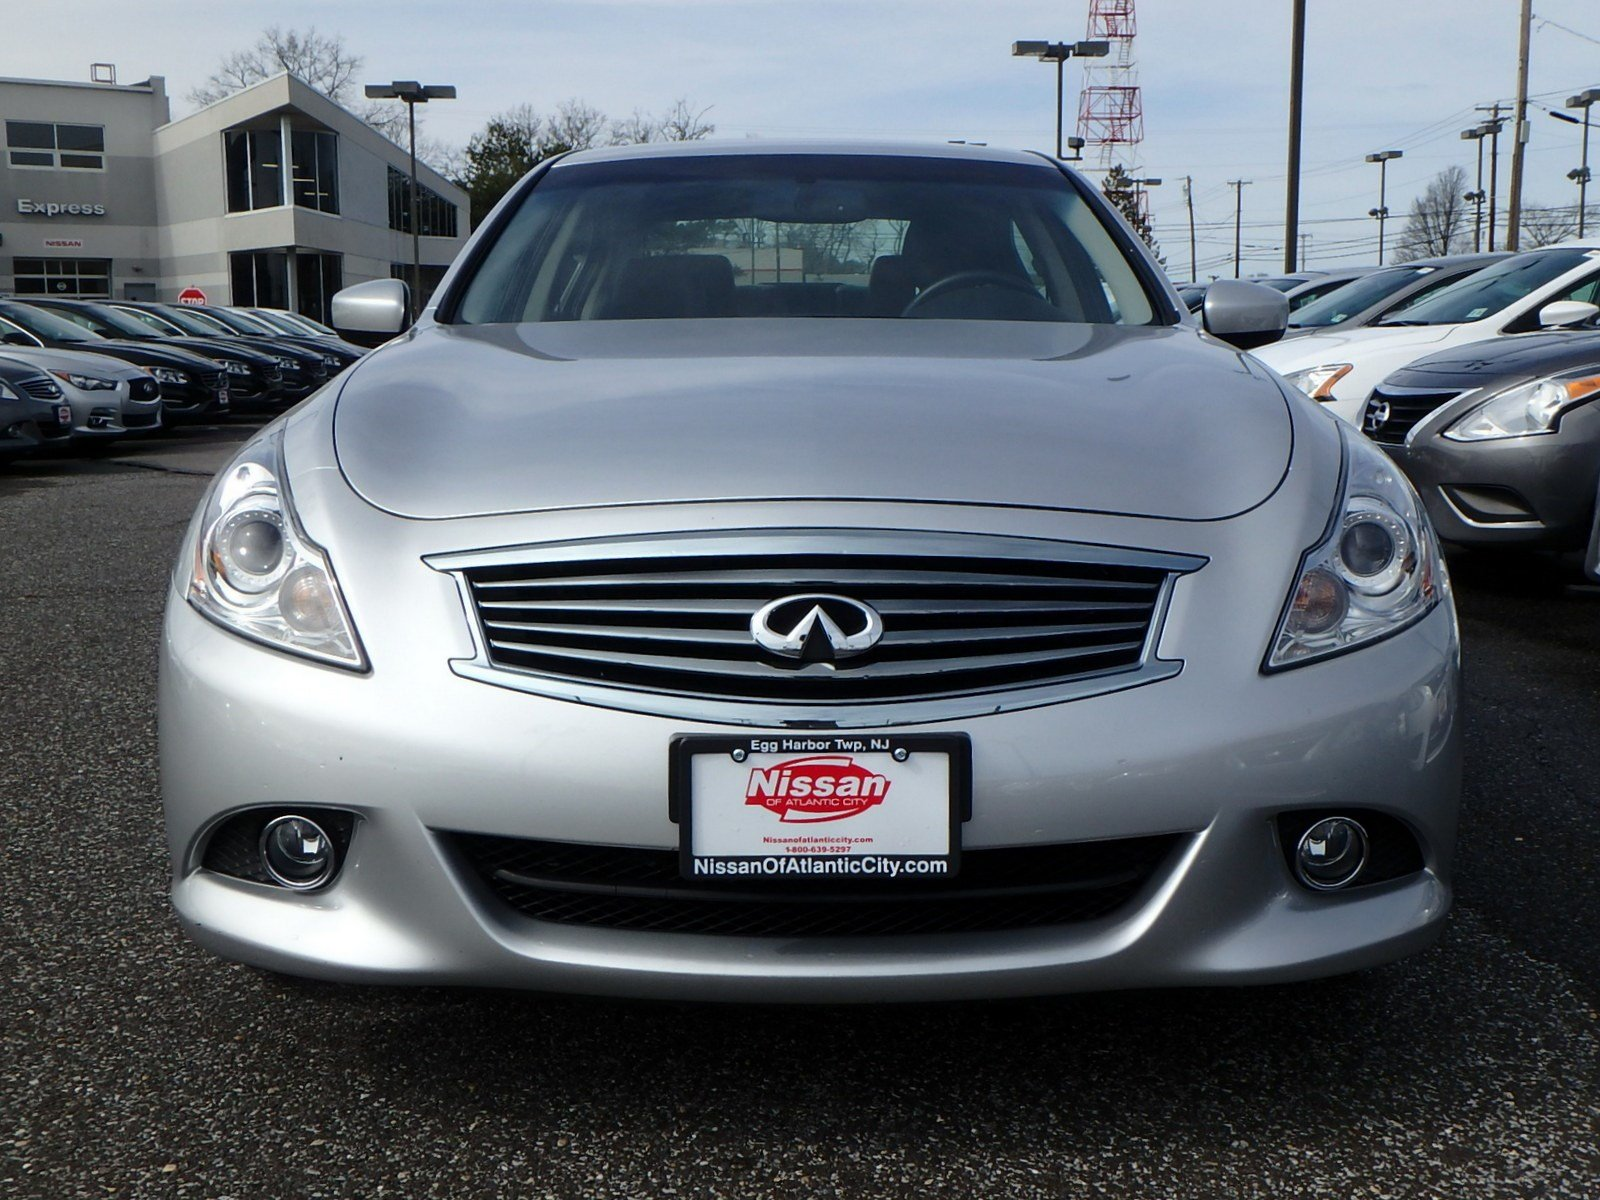 Pre Owned 2015 INFINITI Q40 4dr Car in Egg Harbor Township P5343